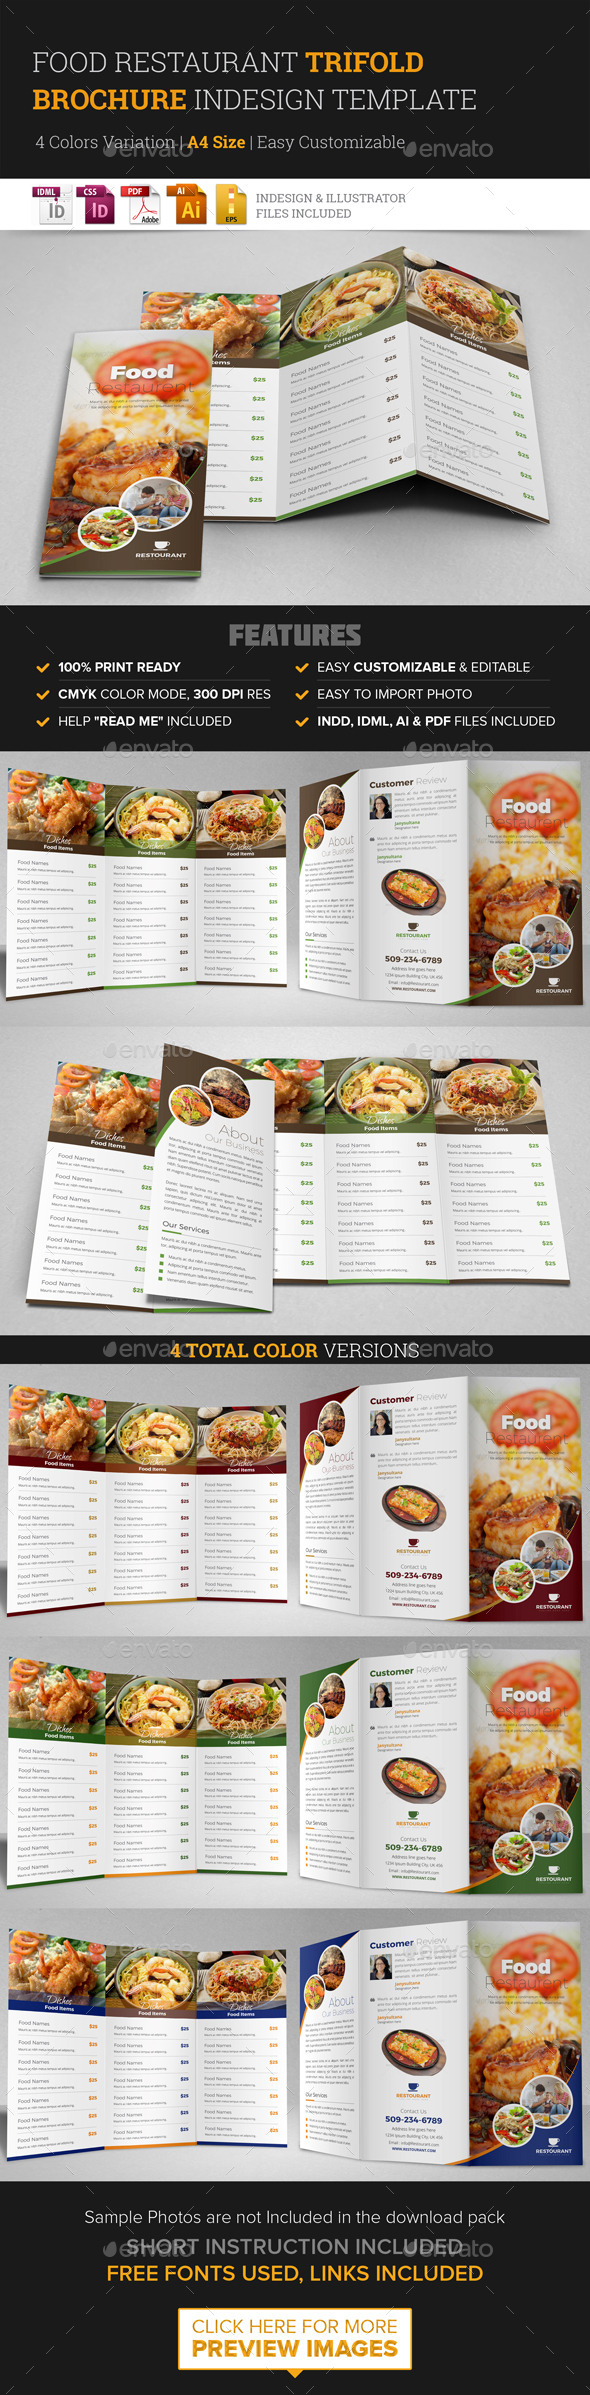 trifold brochure indesign graphics designs templates